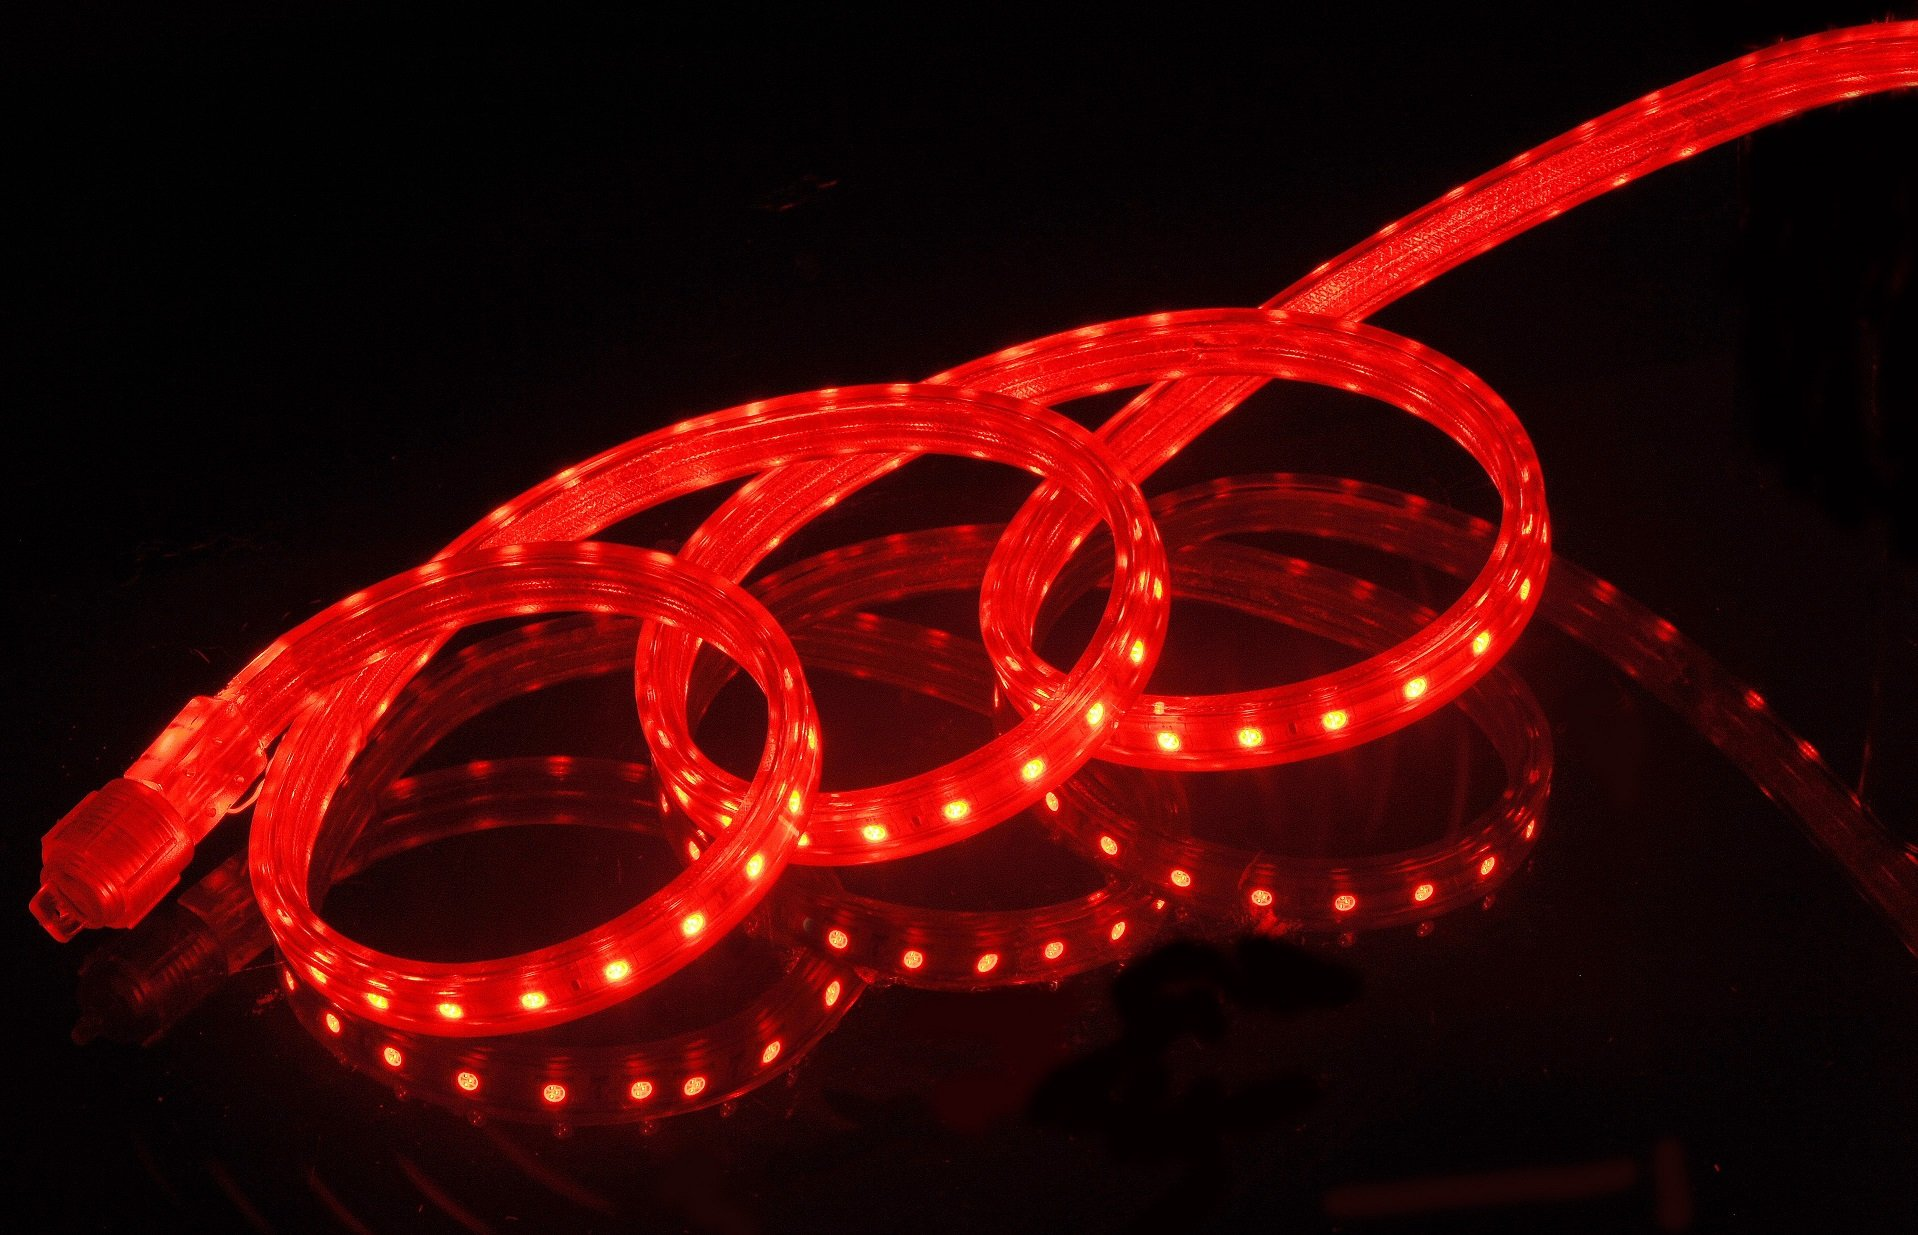 CBconcept UL Listed, 100 Feet,Super Bright 27000 Lumen, Red, Dimmable, 110-120V AC Flexible Flat LED Strip Rope Light, 1830 Units 5050 SMD LEDs, Indoor/Outdoor Use, [Ready to use]